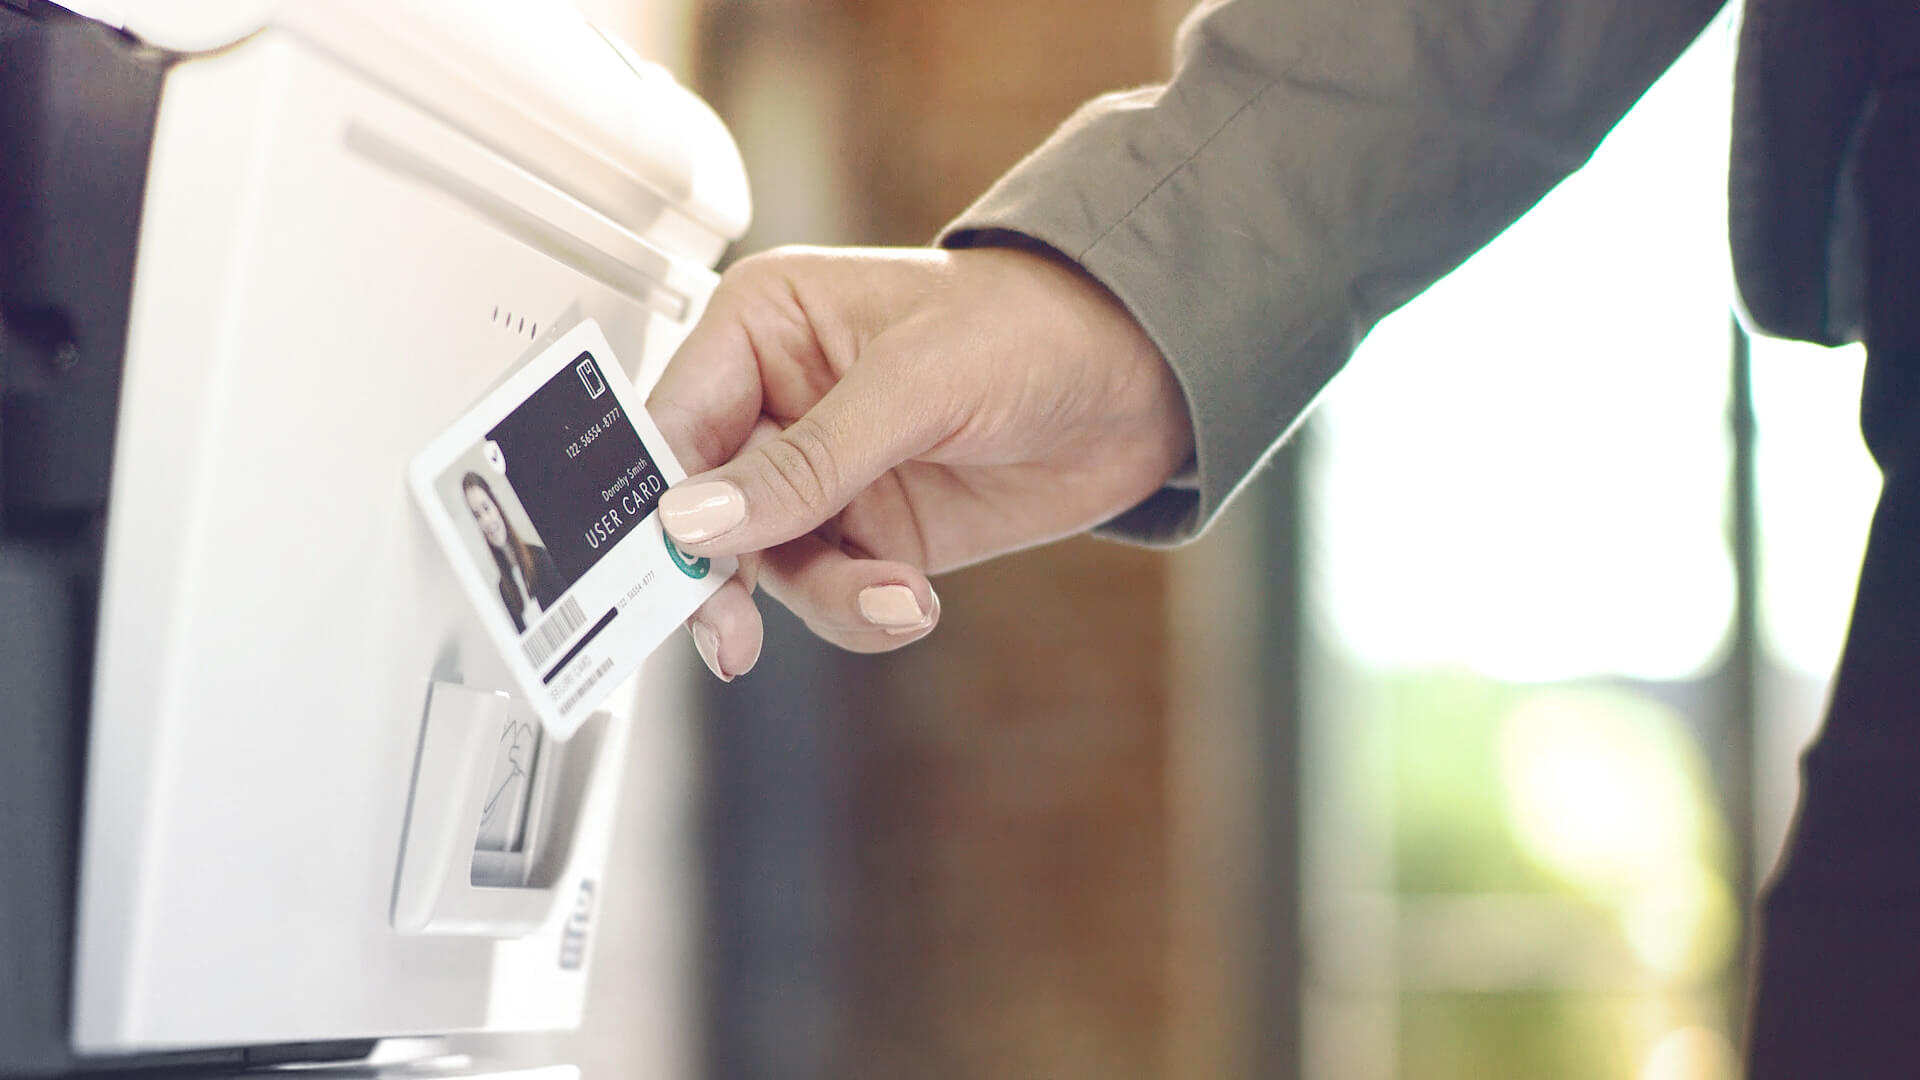 a card is hold in front of a printer for authentication